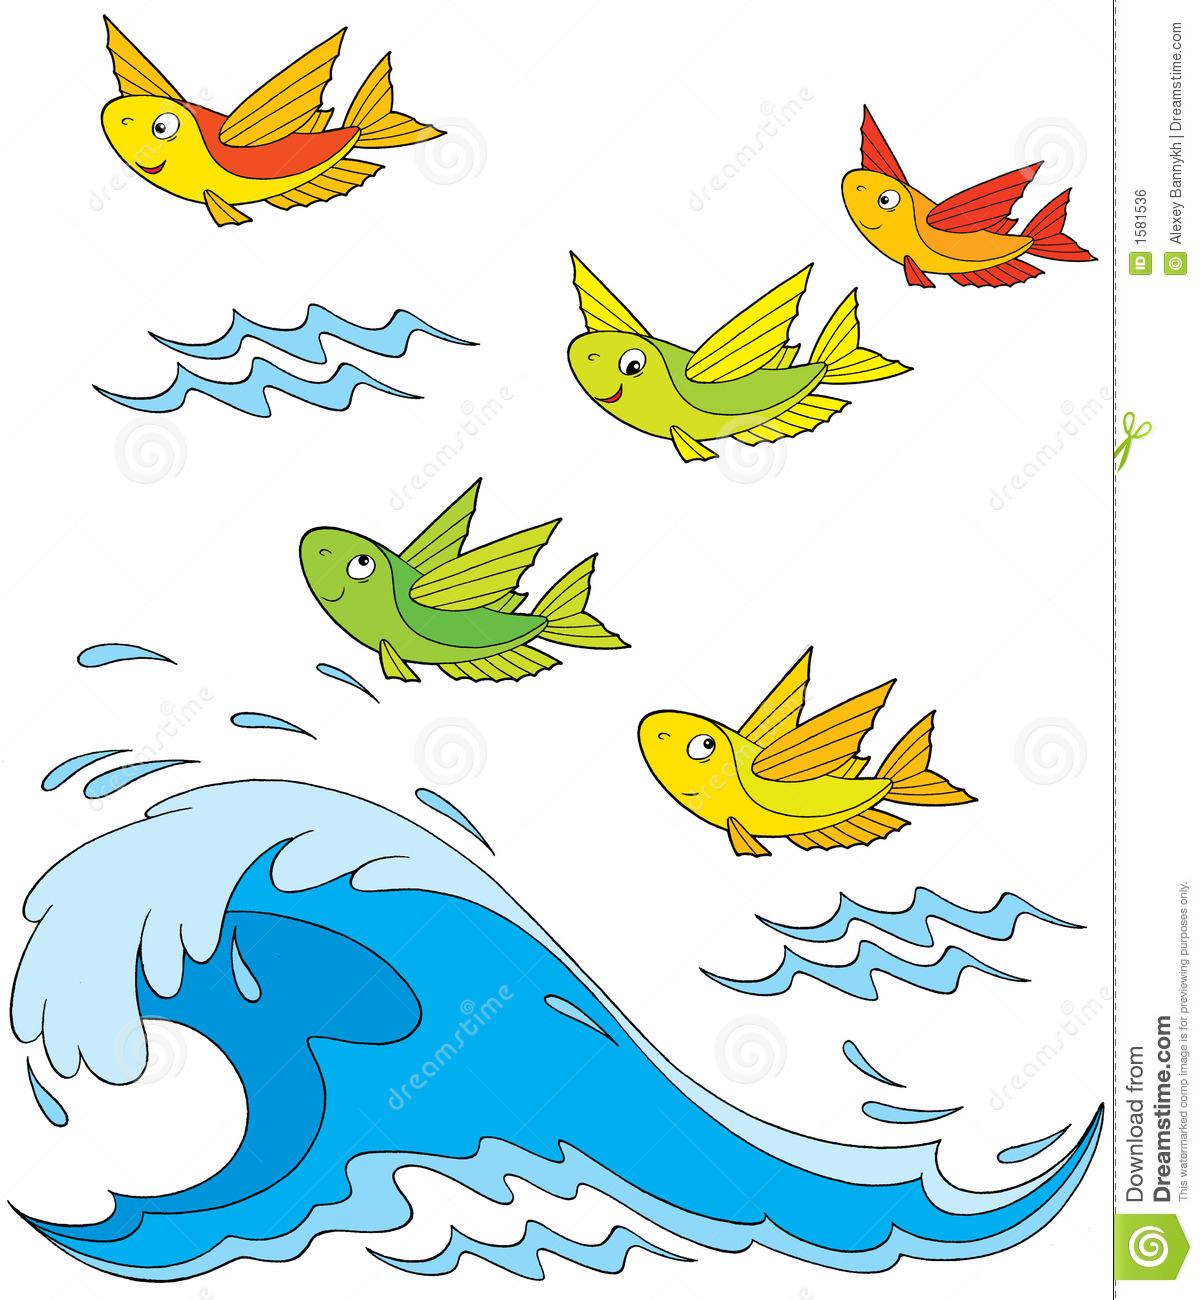 Flying fish stock vector image of flight drawn artistic for Flying fish fleet